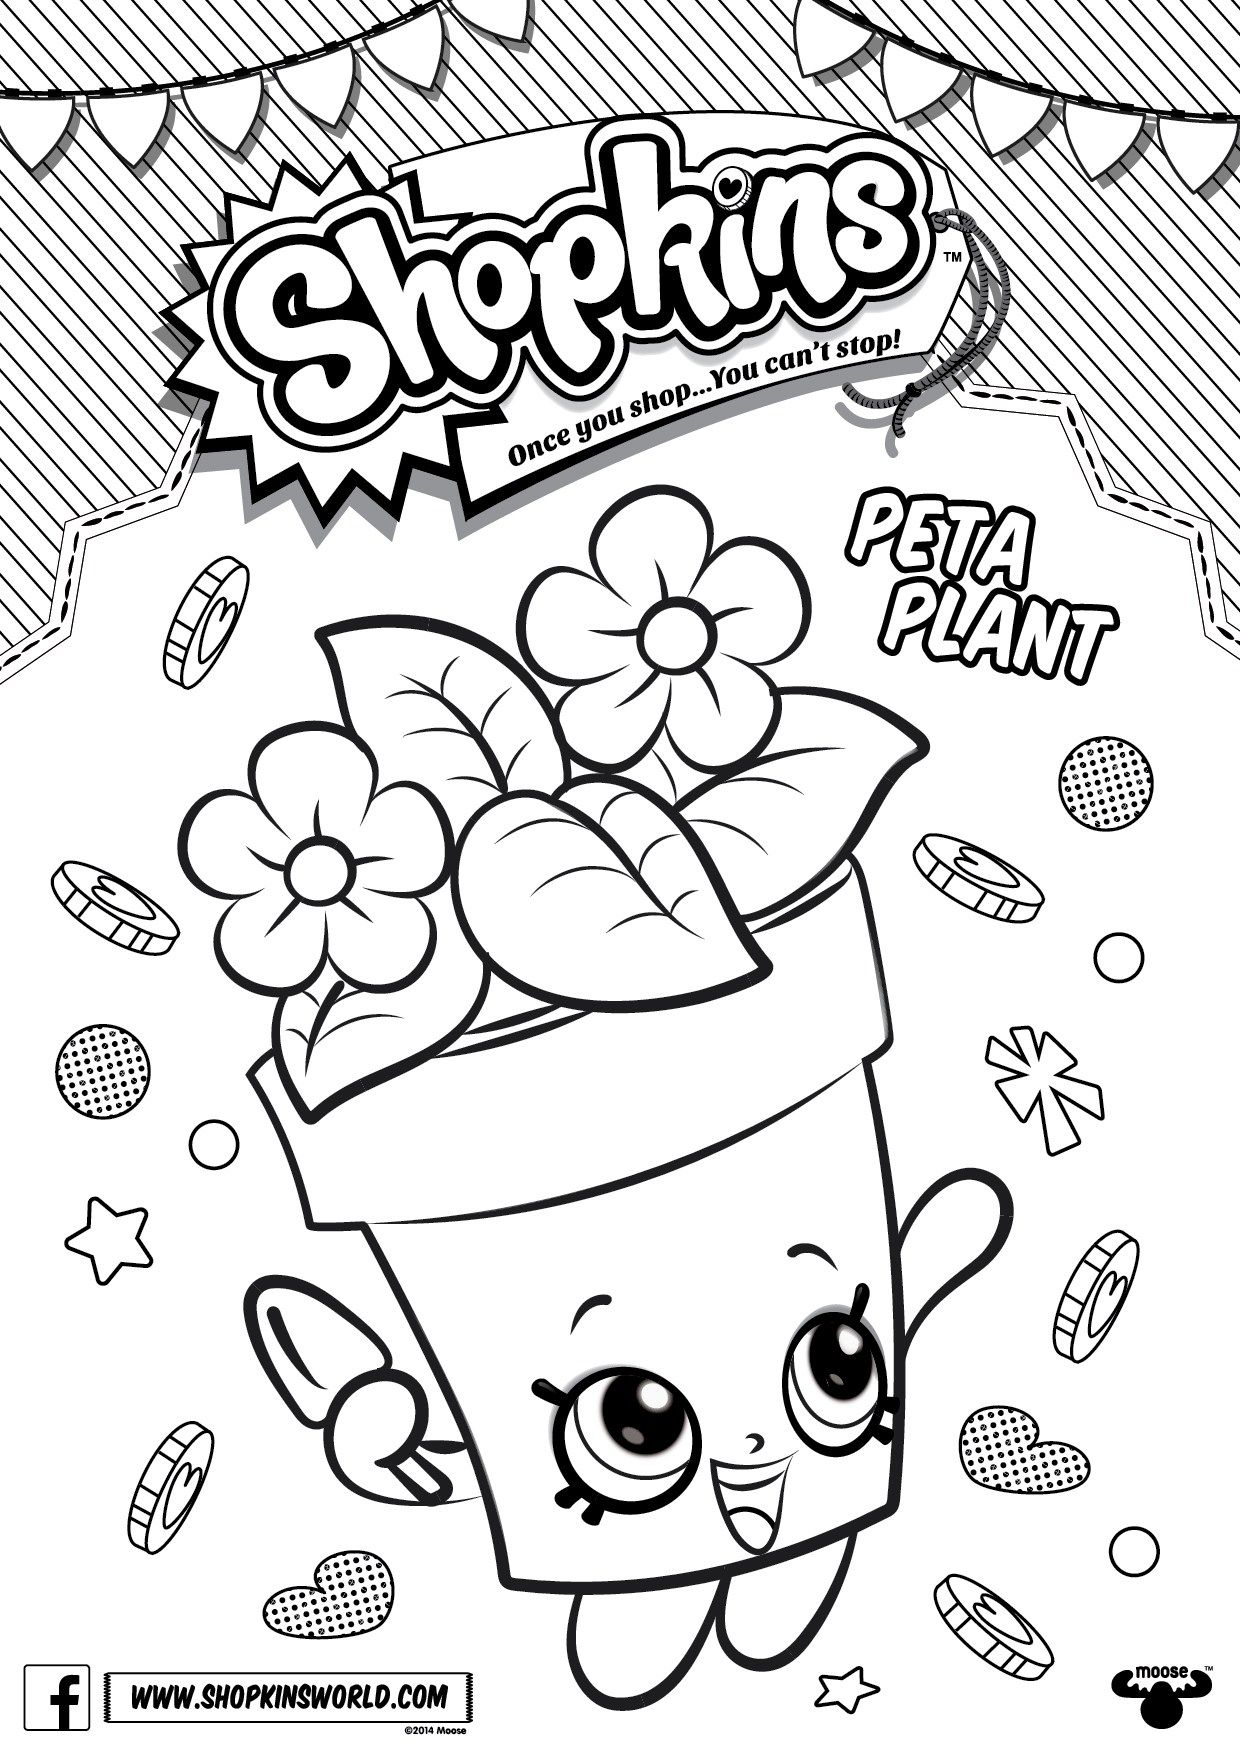 Shopkins coloring pages polly polish - Shopkins Coloring Pages Season 4 Peta Plant